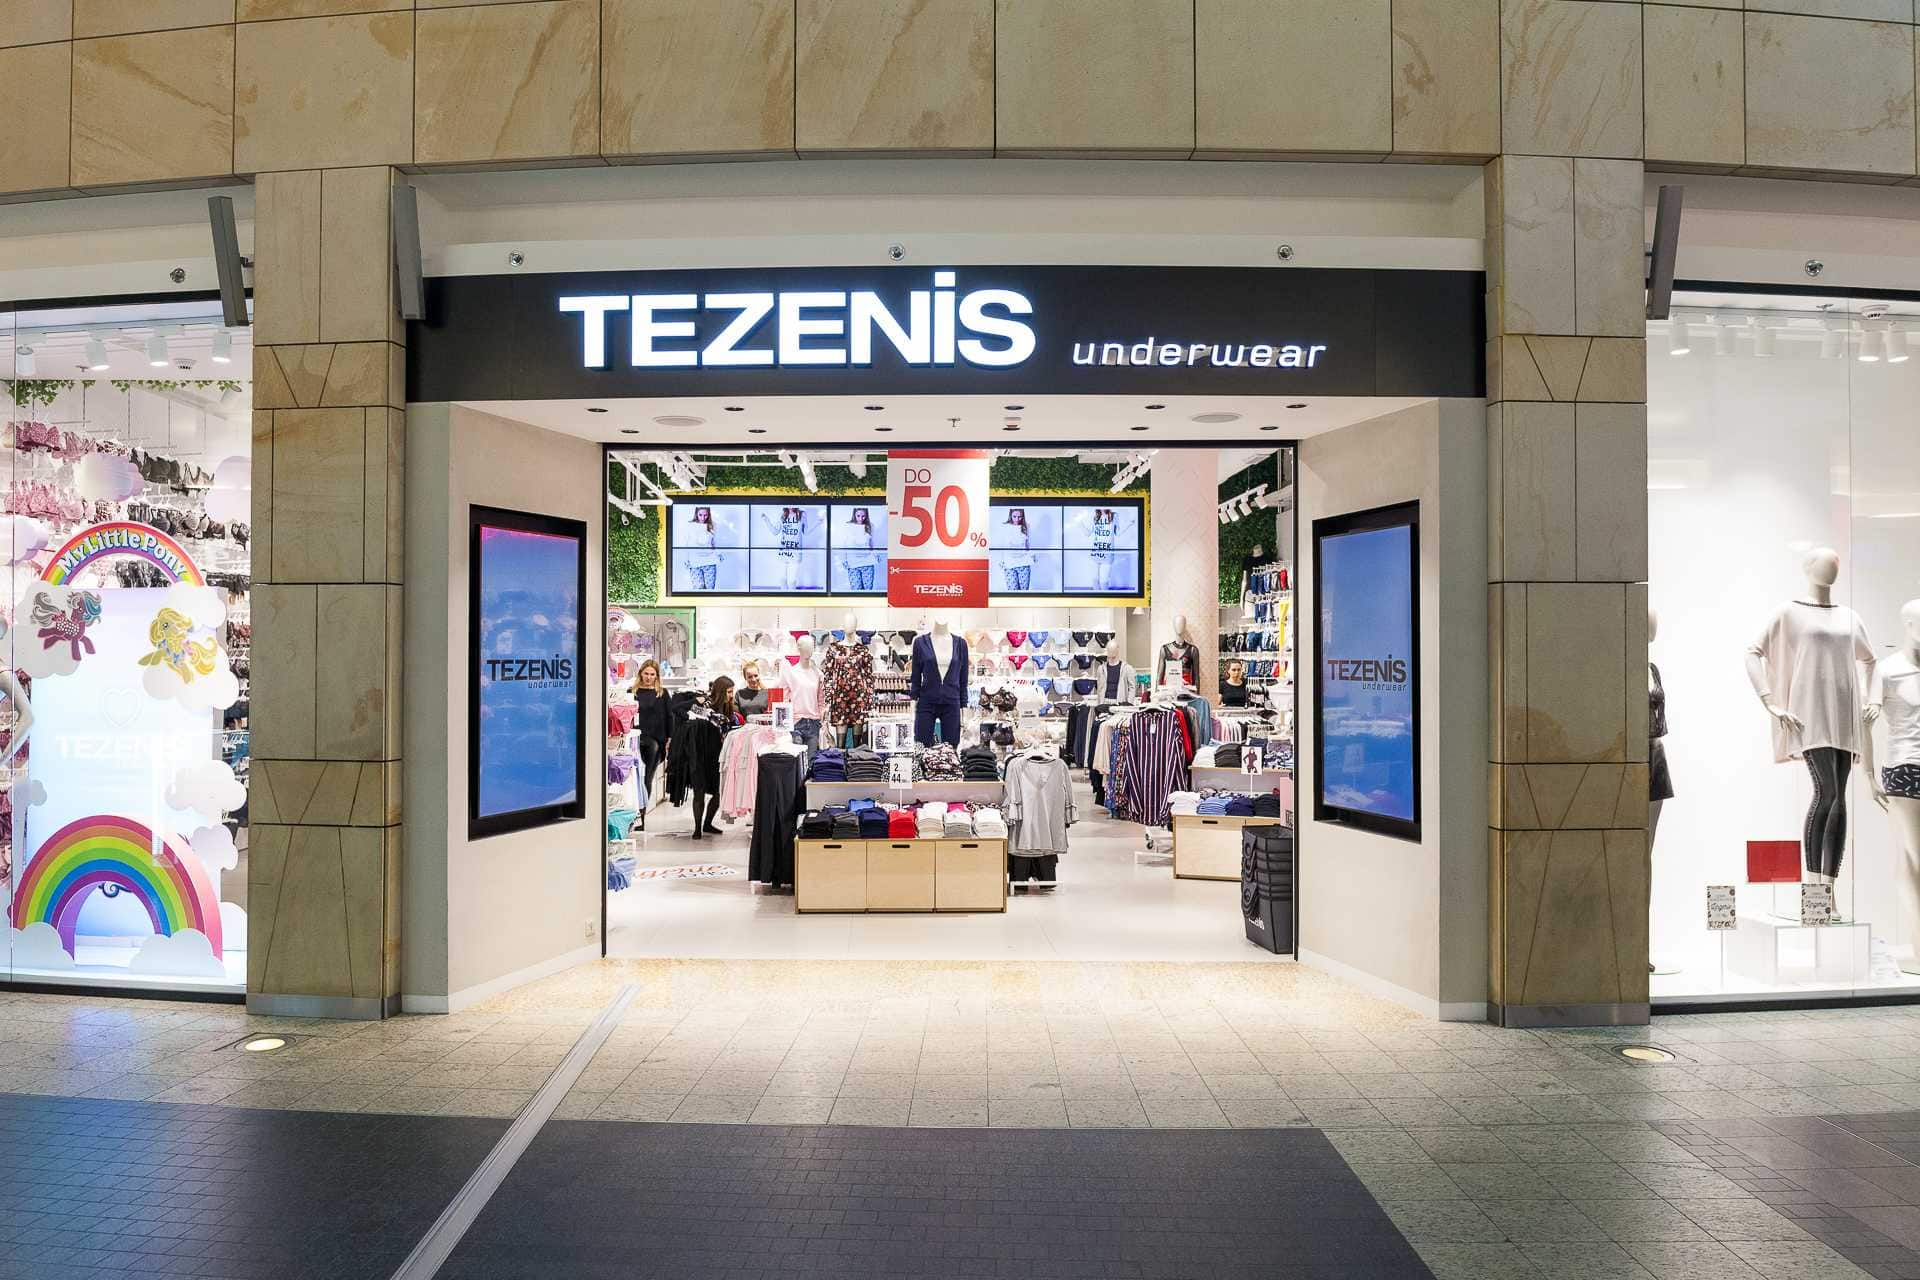 TEZENIS Italian underwear shop for young people is already in Blockbuster Mall